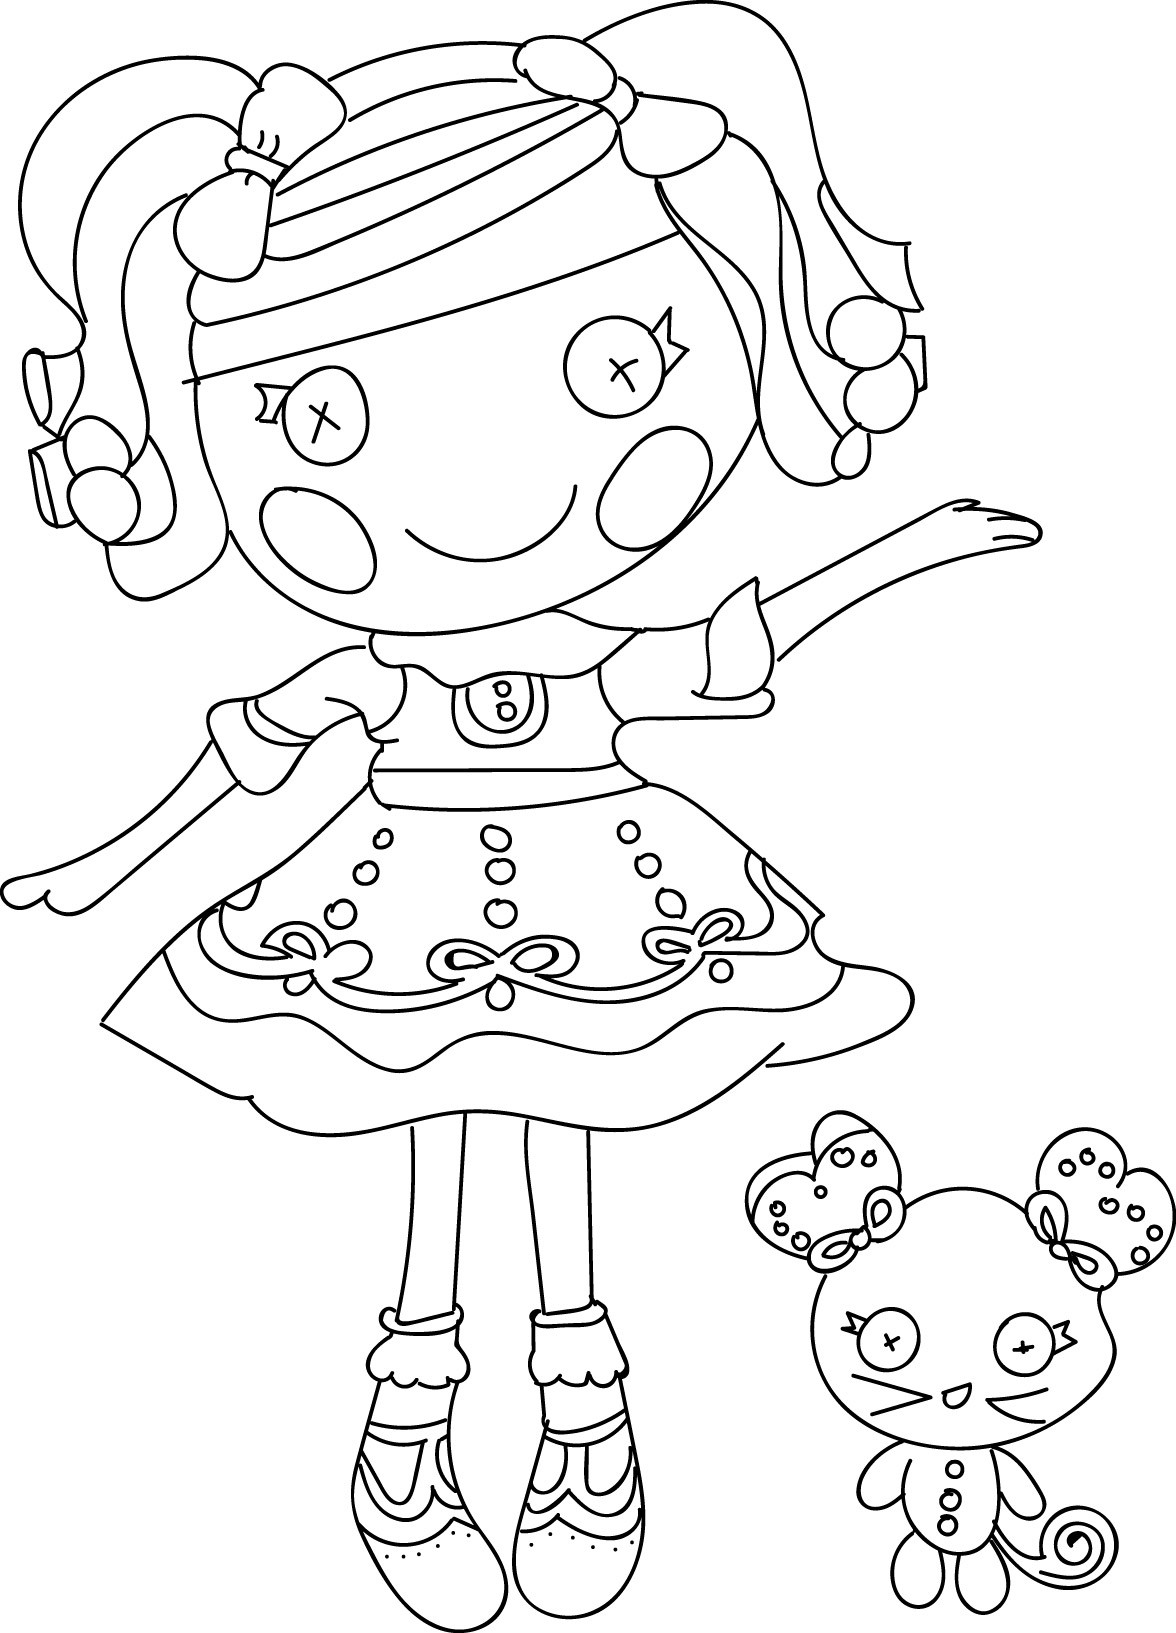 Lalaloopsy Printable Coloring Sheets  Lalaloopsy Coloring Pages Bestofcoloring